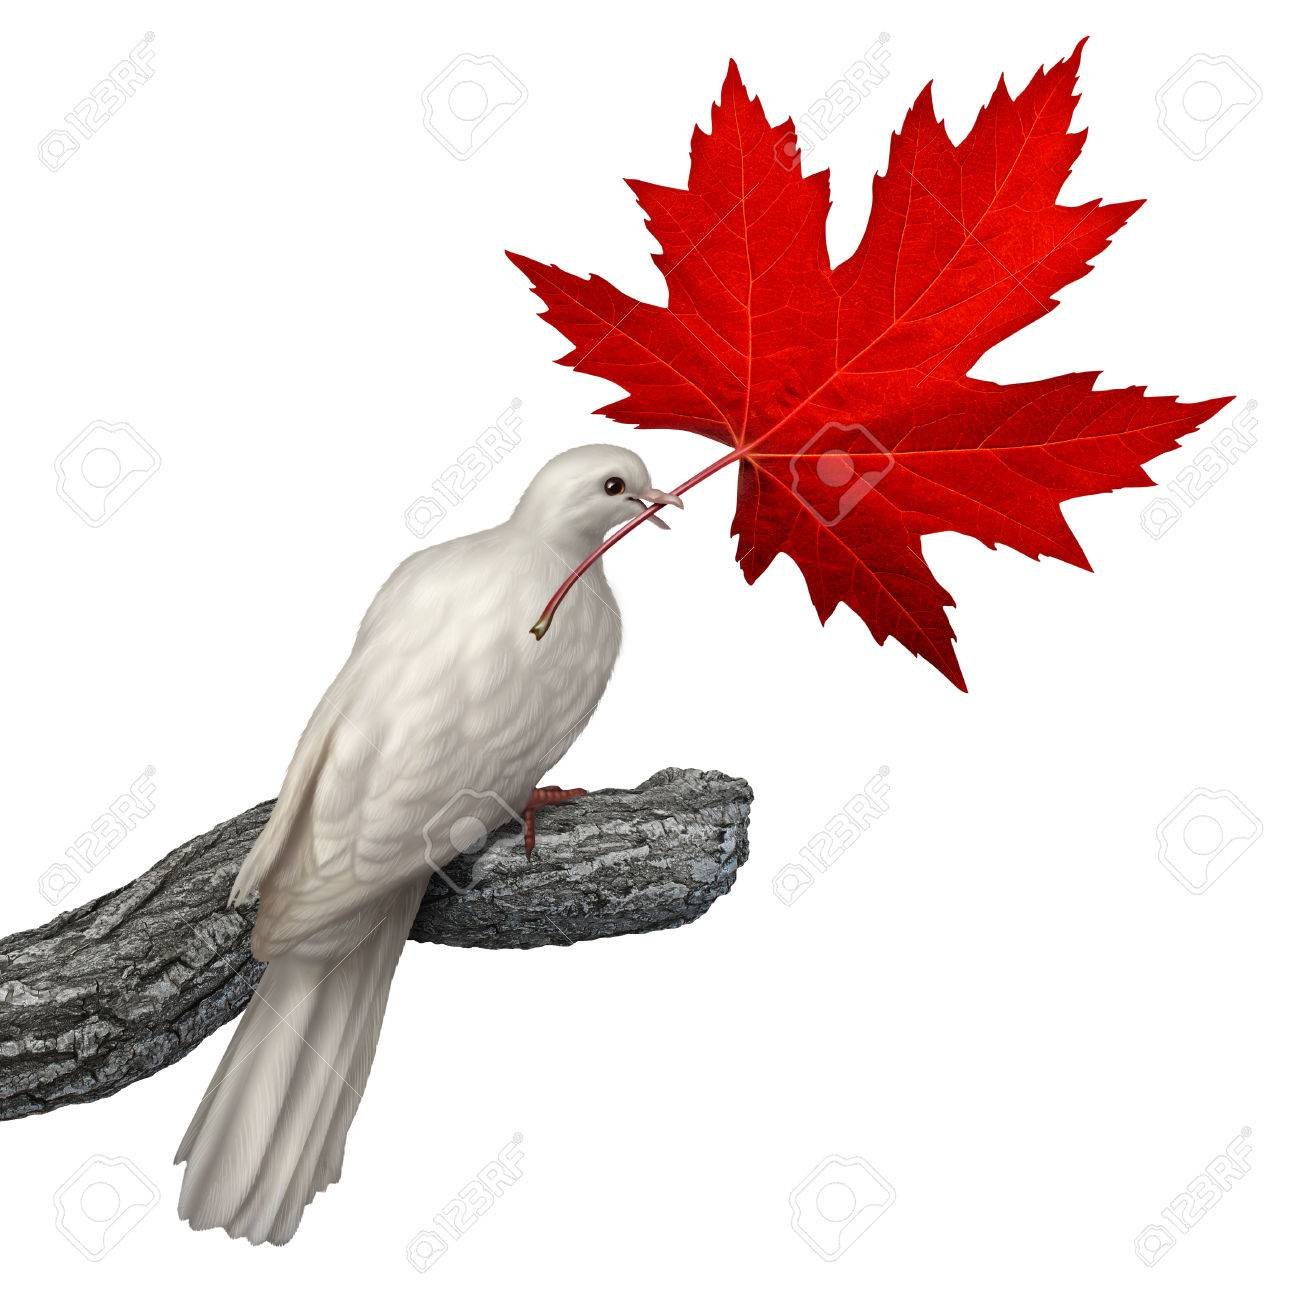 canada peace concept as a white dove holding a red maple leaf